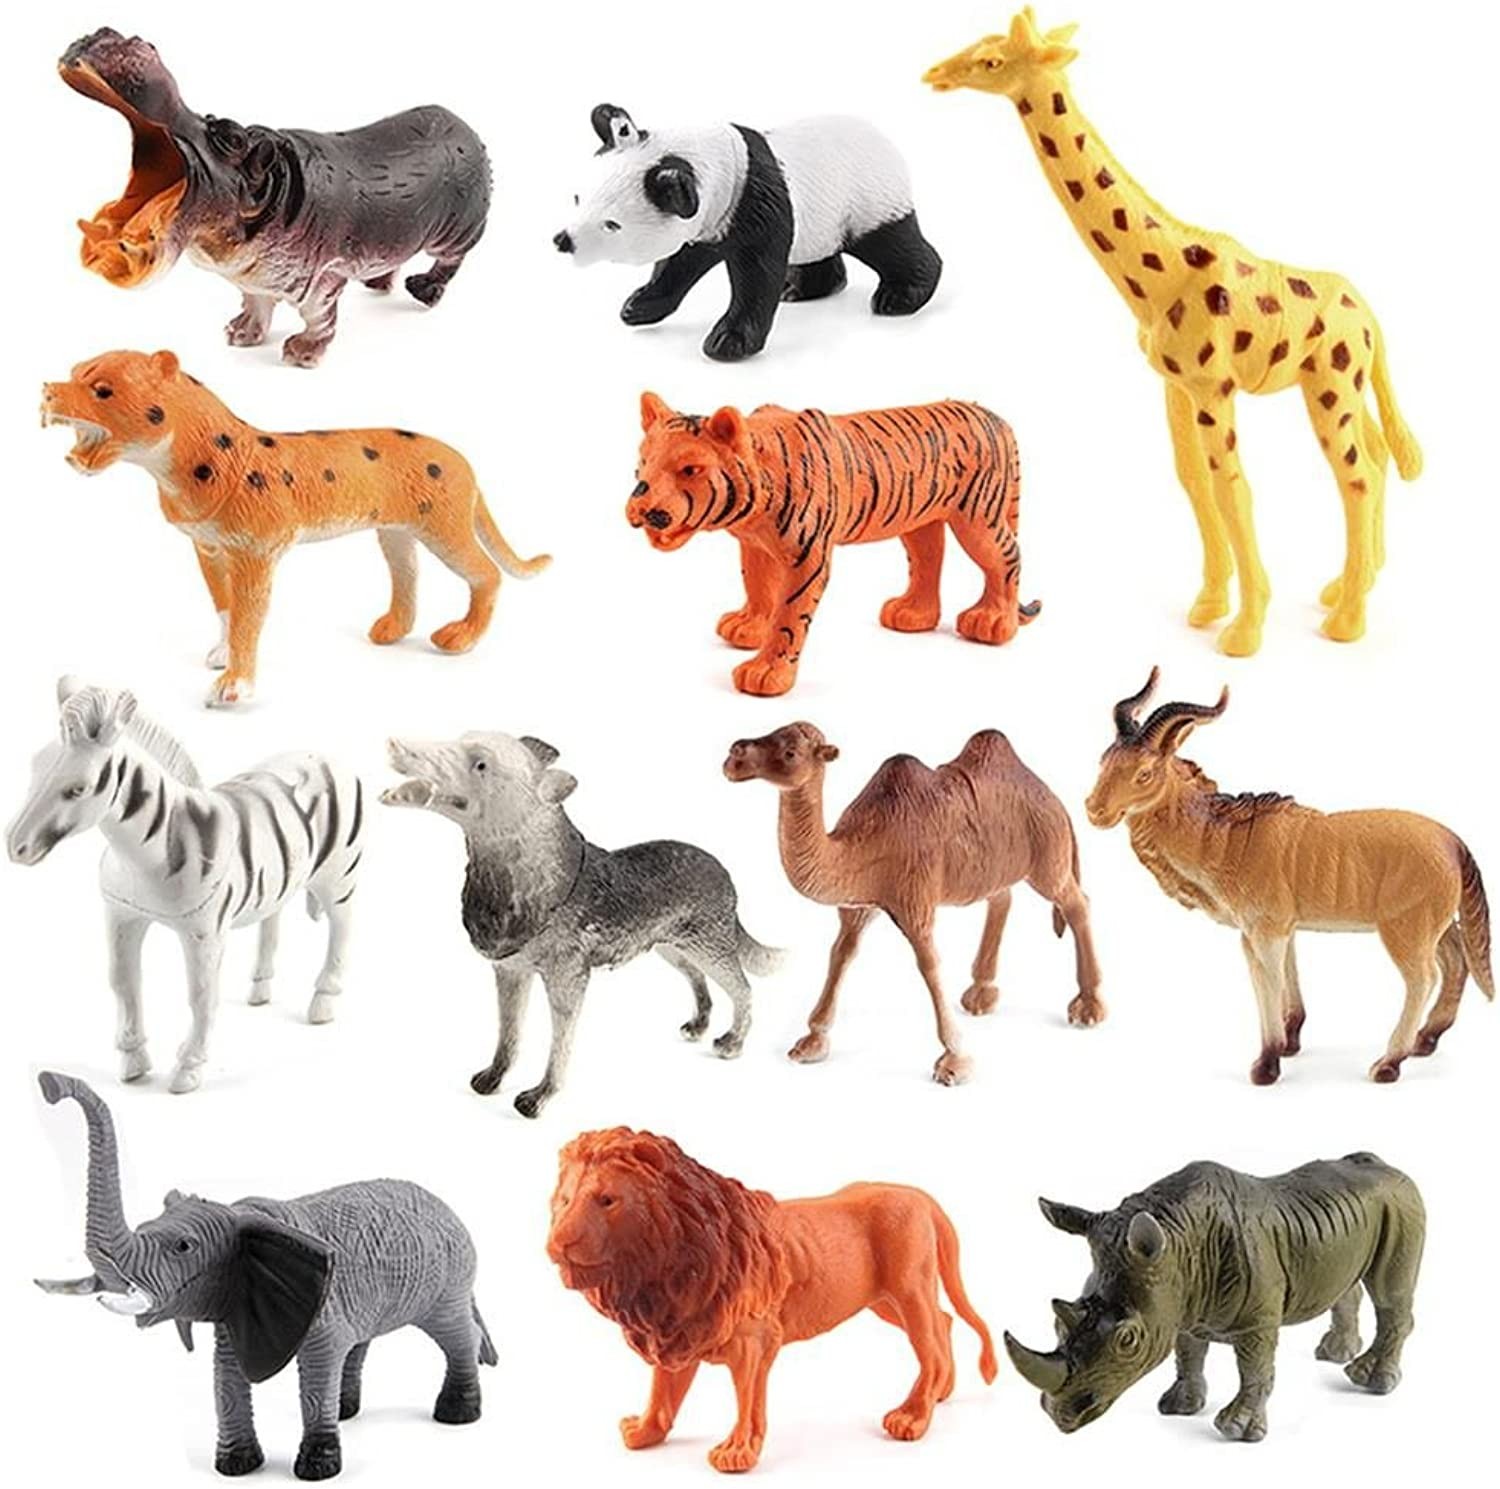 Mbros.KRJW Dinosaur Figures   Ocean Sea Animal   Insect Toys Set Realistic Learning Party Favors for Boys Girls Kids Toddlers (12pack Wild Animals)